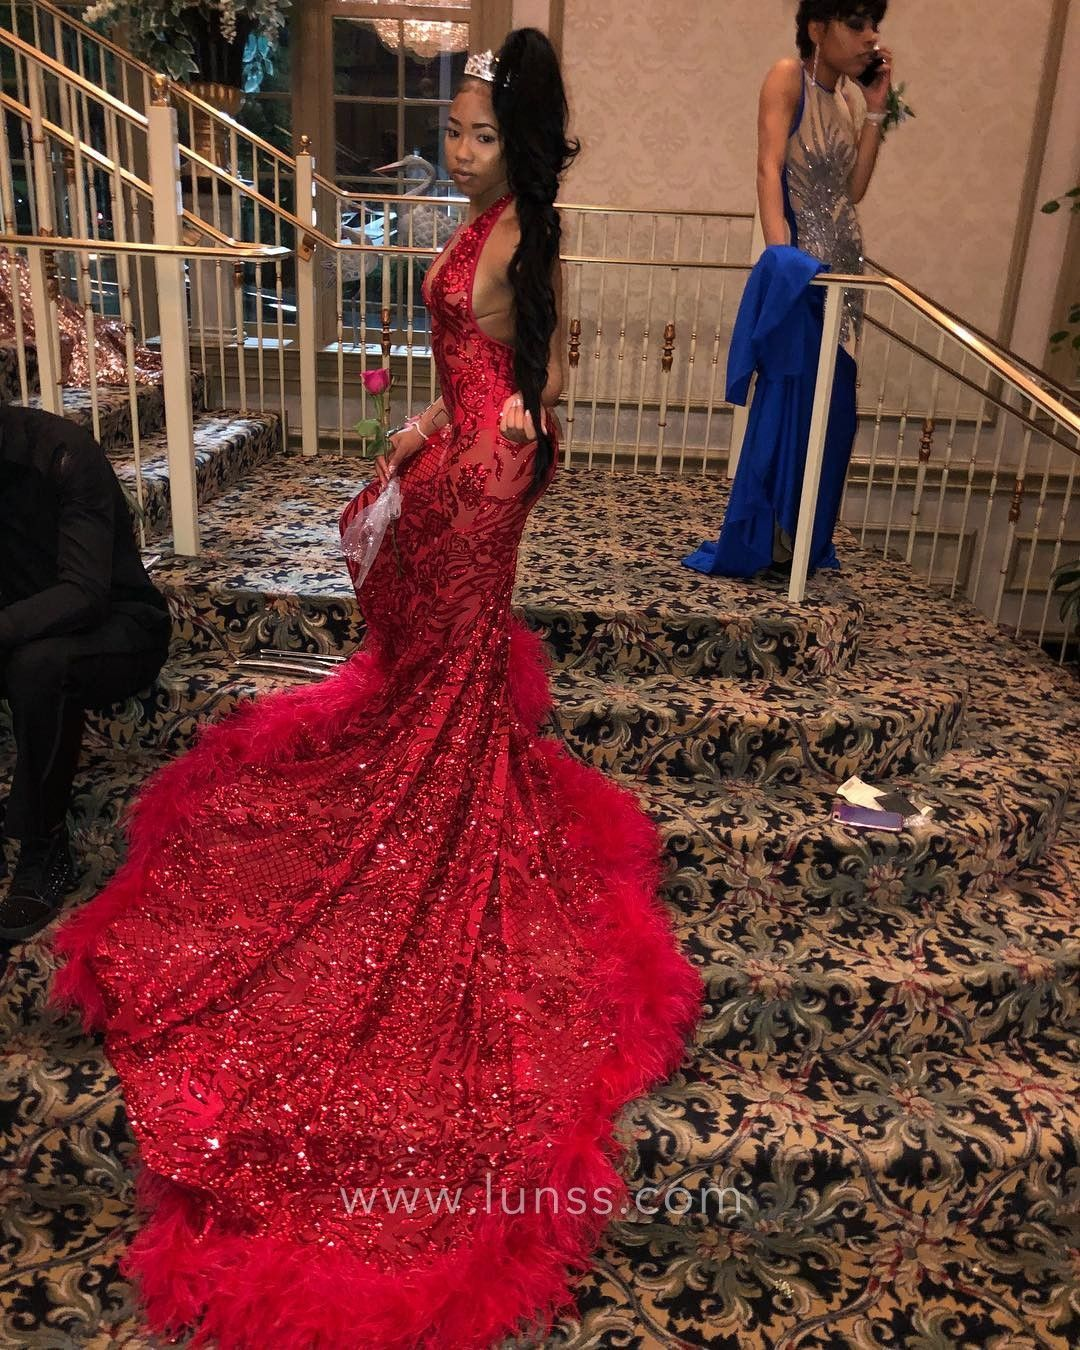 617a1b3ca7 Gorgeous red sequin African American floor length long mermaid prom dress  with feather hemline long train